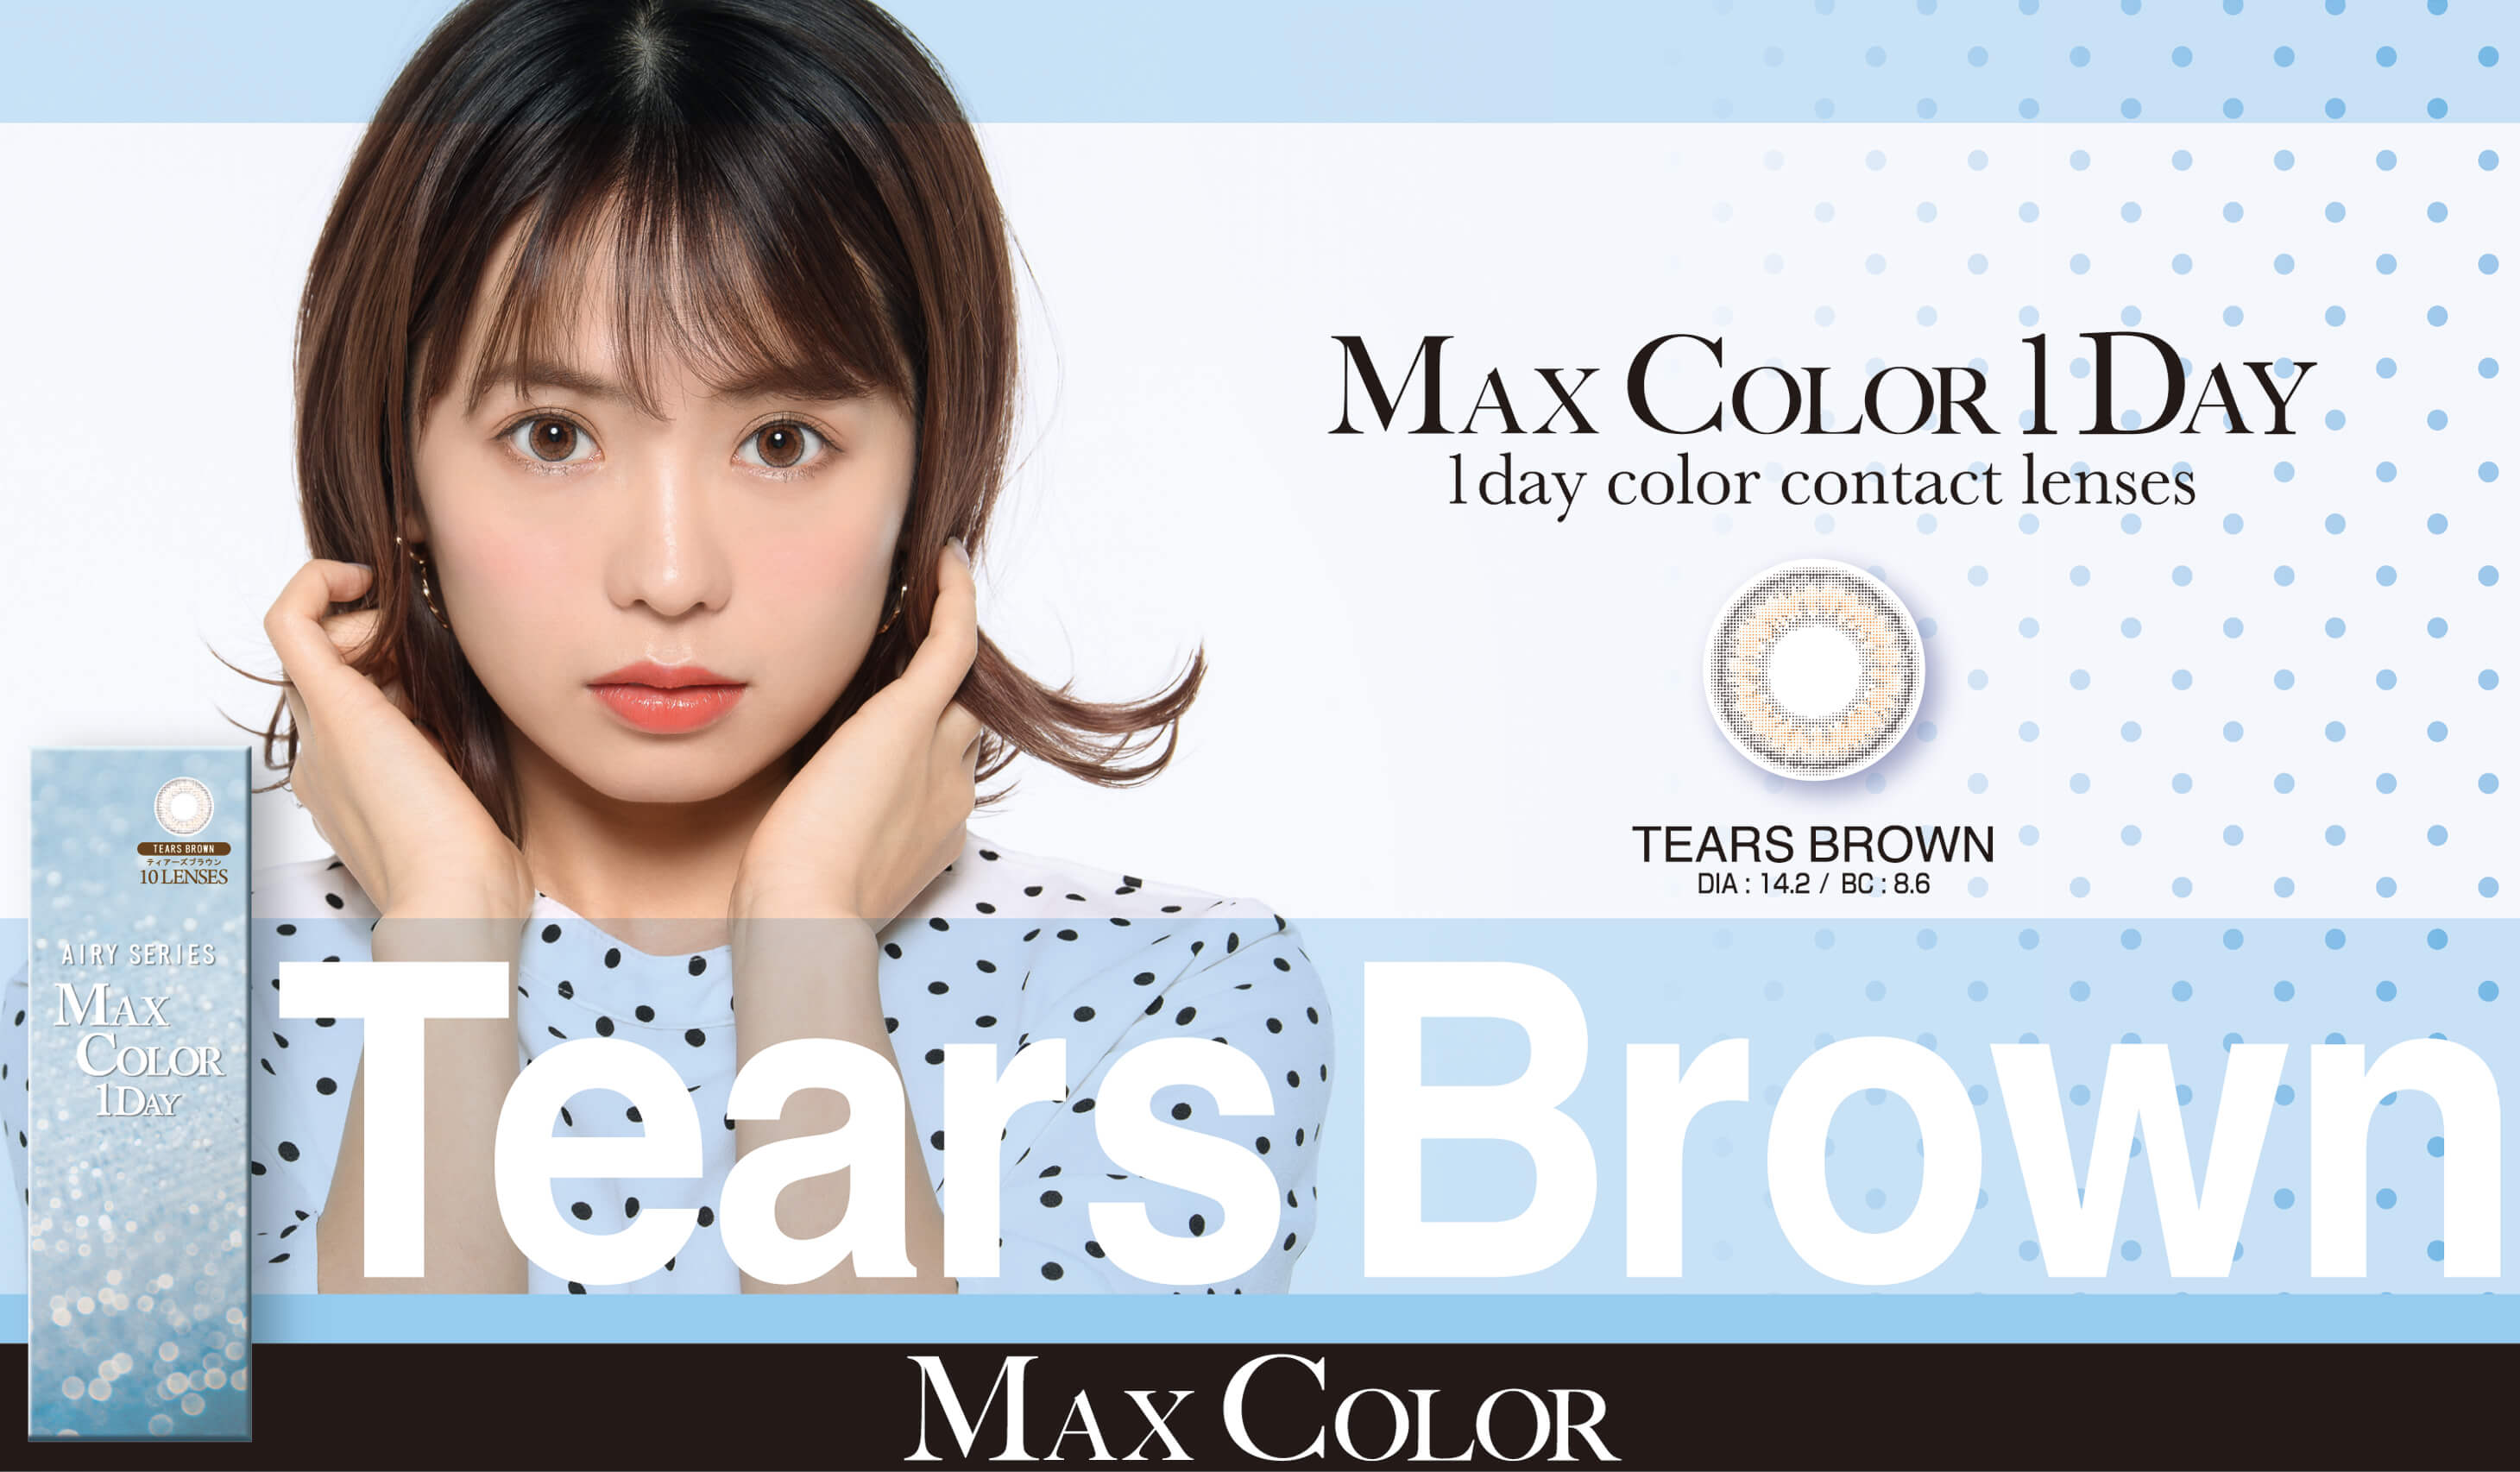 MaxColor1day-マックスカラーワンデー|【鈴木あや・寿るい・筒井結愛】プロデュースカラコン|MAX COLOR 1DAY 1day color contact lenses TEARS BROWN DIA:14.2/BC:8.6